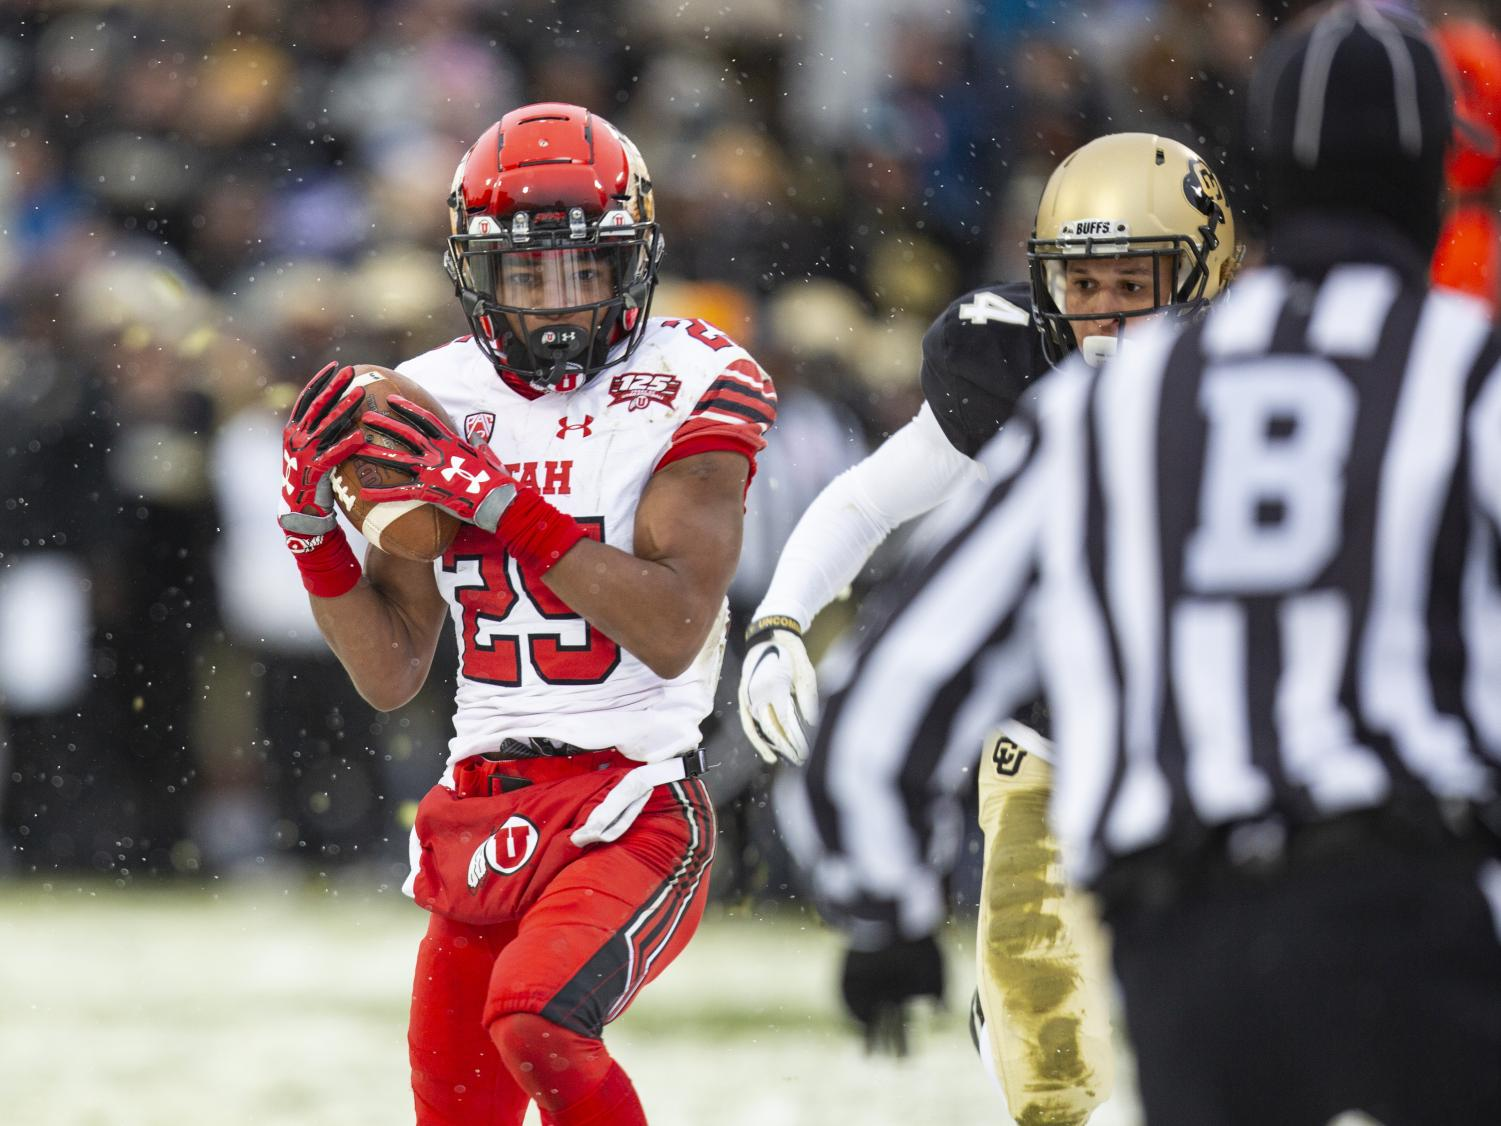 University of Utah freshman wide receiver Jaylen Dixon (25) brings down a pass and runs into the end zone at Folsom Field in Boulder, CO Saturday, Nov. 17, 2018. The Utes beat the University of Colorado Buffaloes 30-7. (Photo by: Justin Prather | The Utah Chronicle).